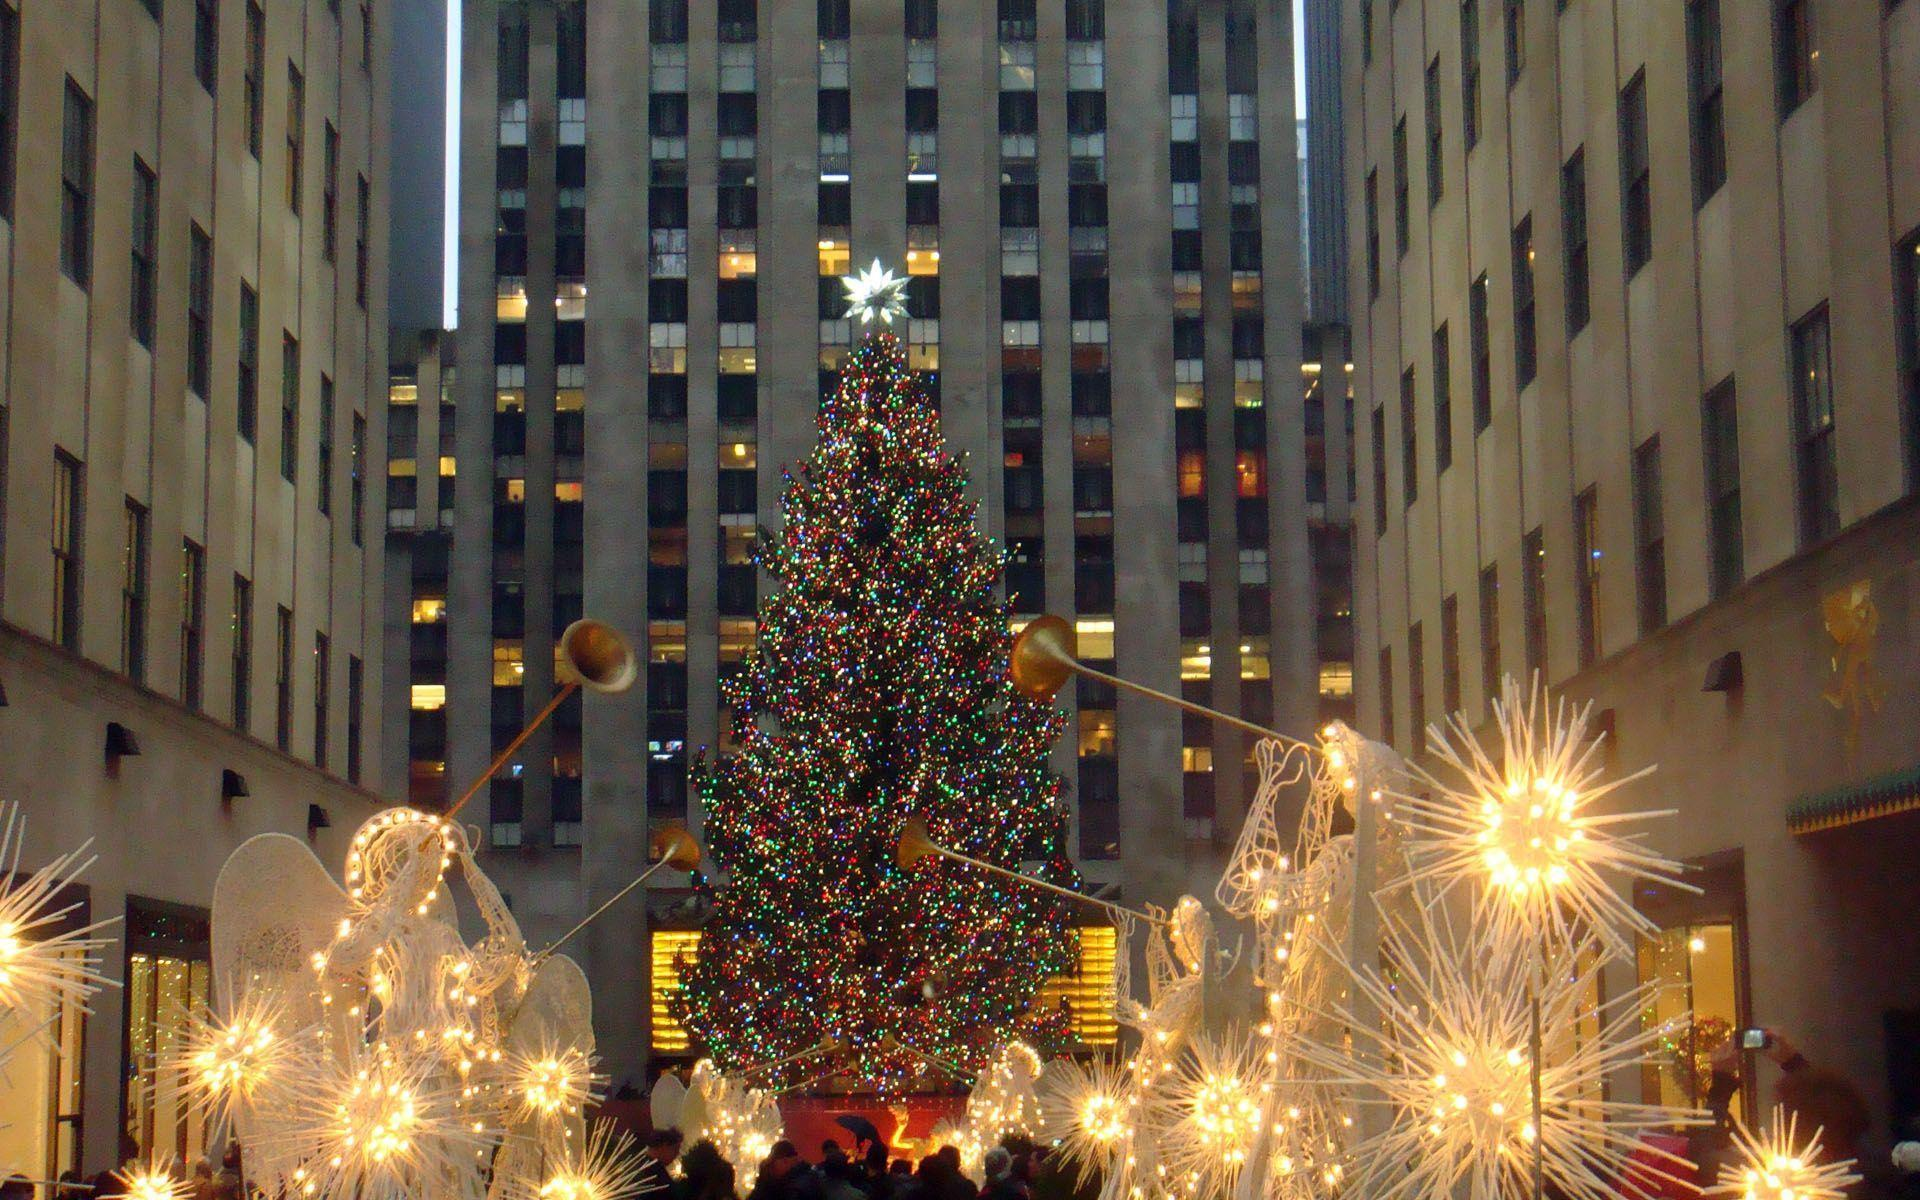 Where Is Christmas Tree In Nyc